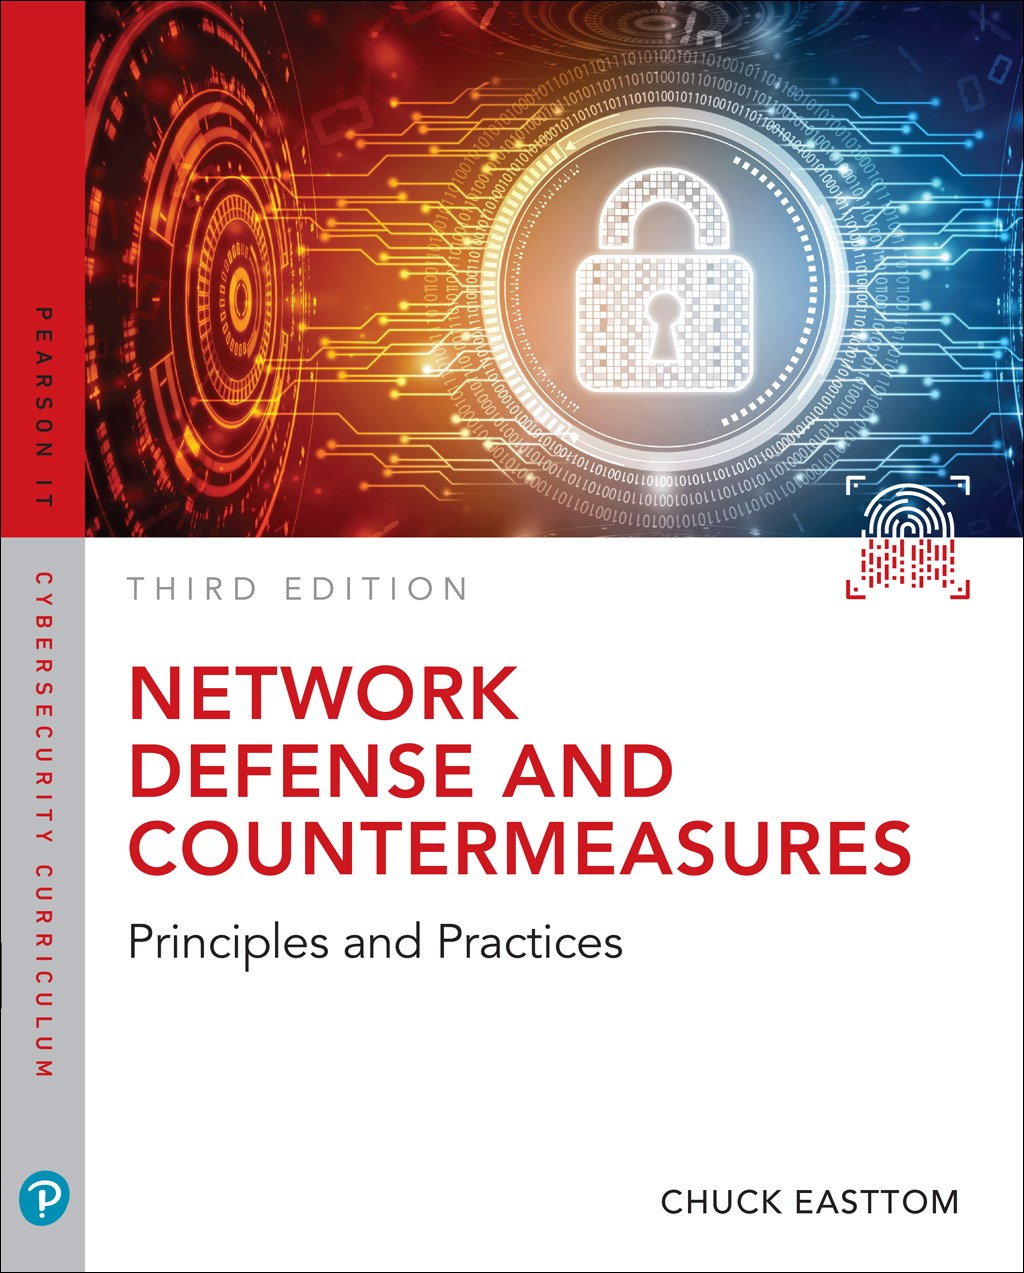 Network Defense and Countermeasures: Principles and Practices, 3rd Edition